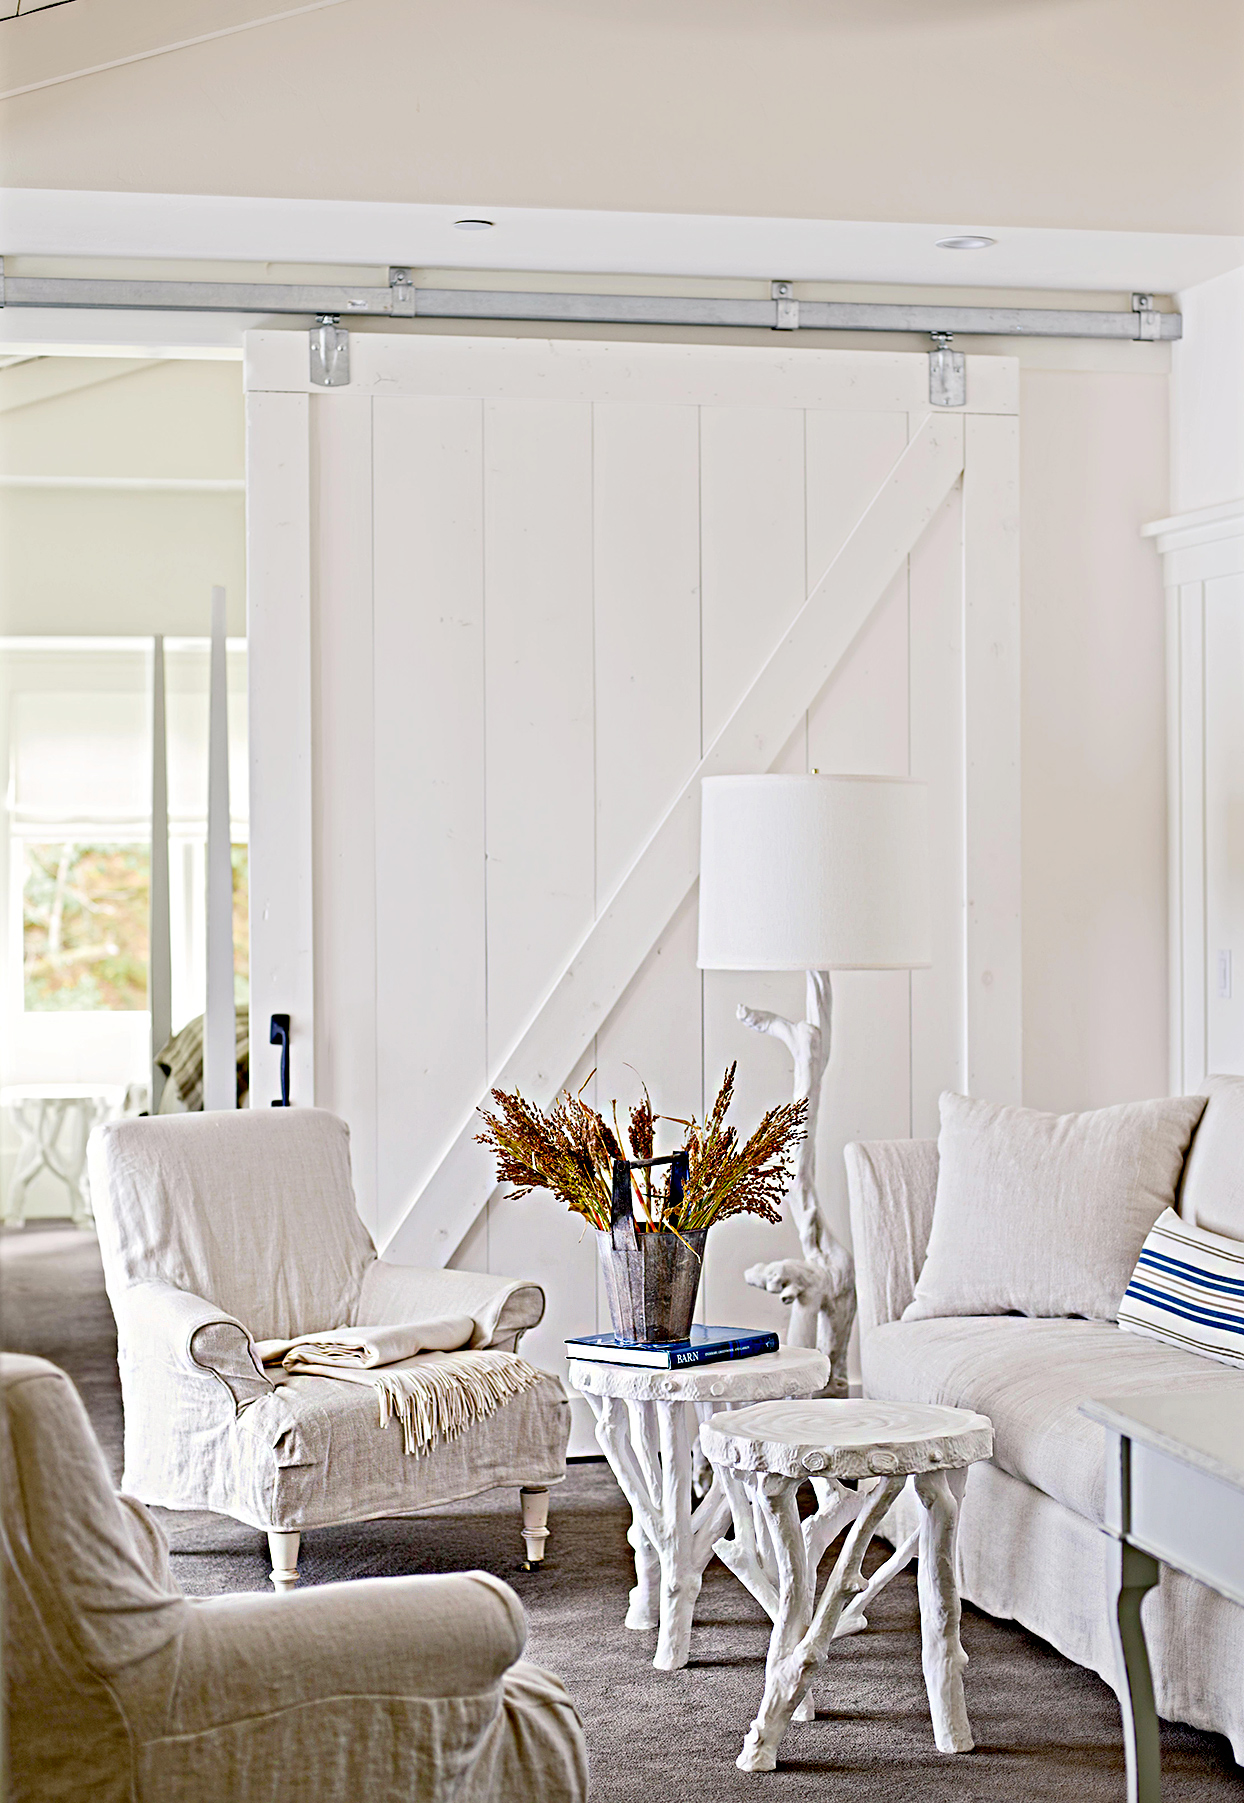 Seating area with white furniture and sliding barn door